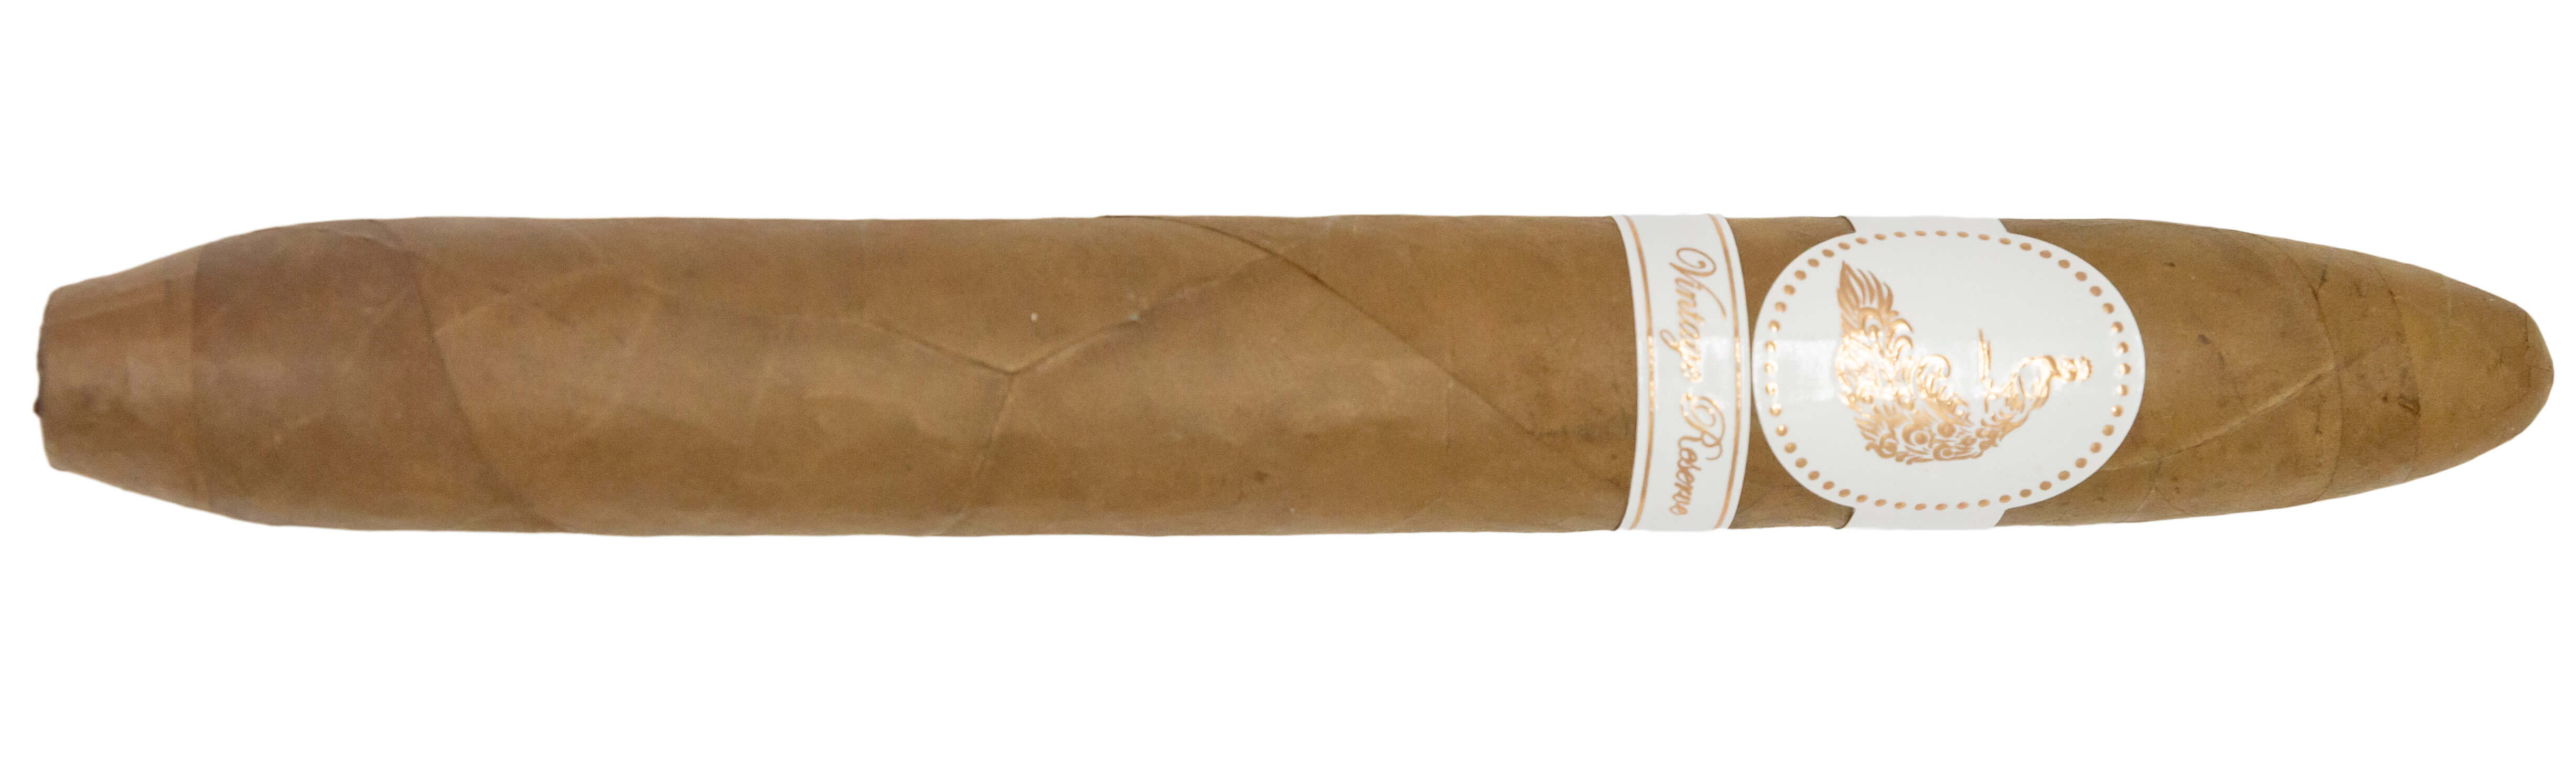 Blind Cigar Review: Mbombay | MQBA Diadem